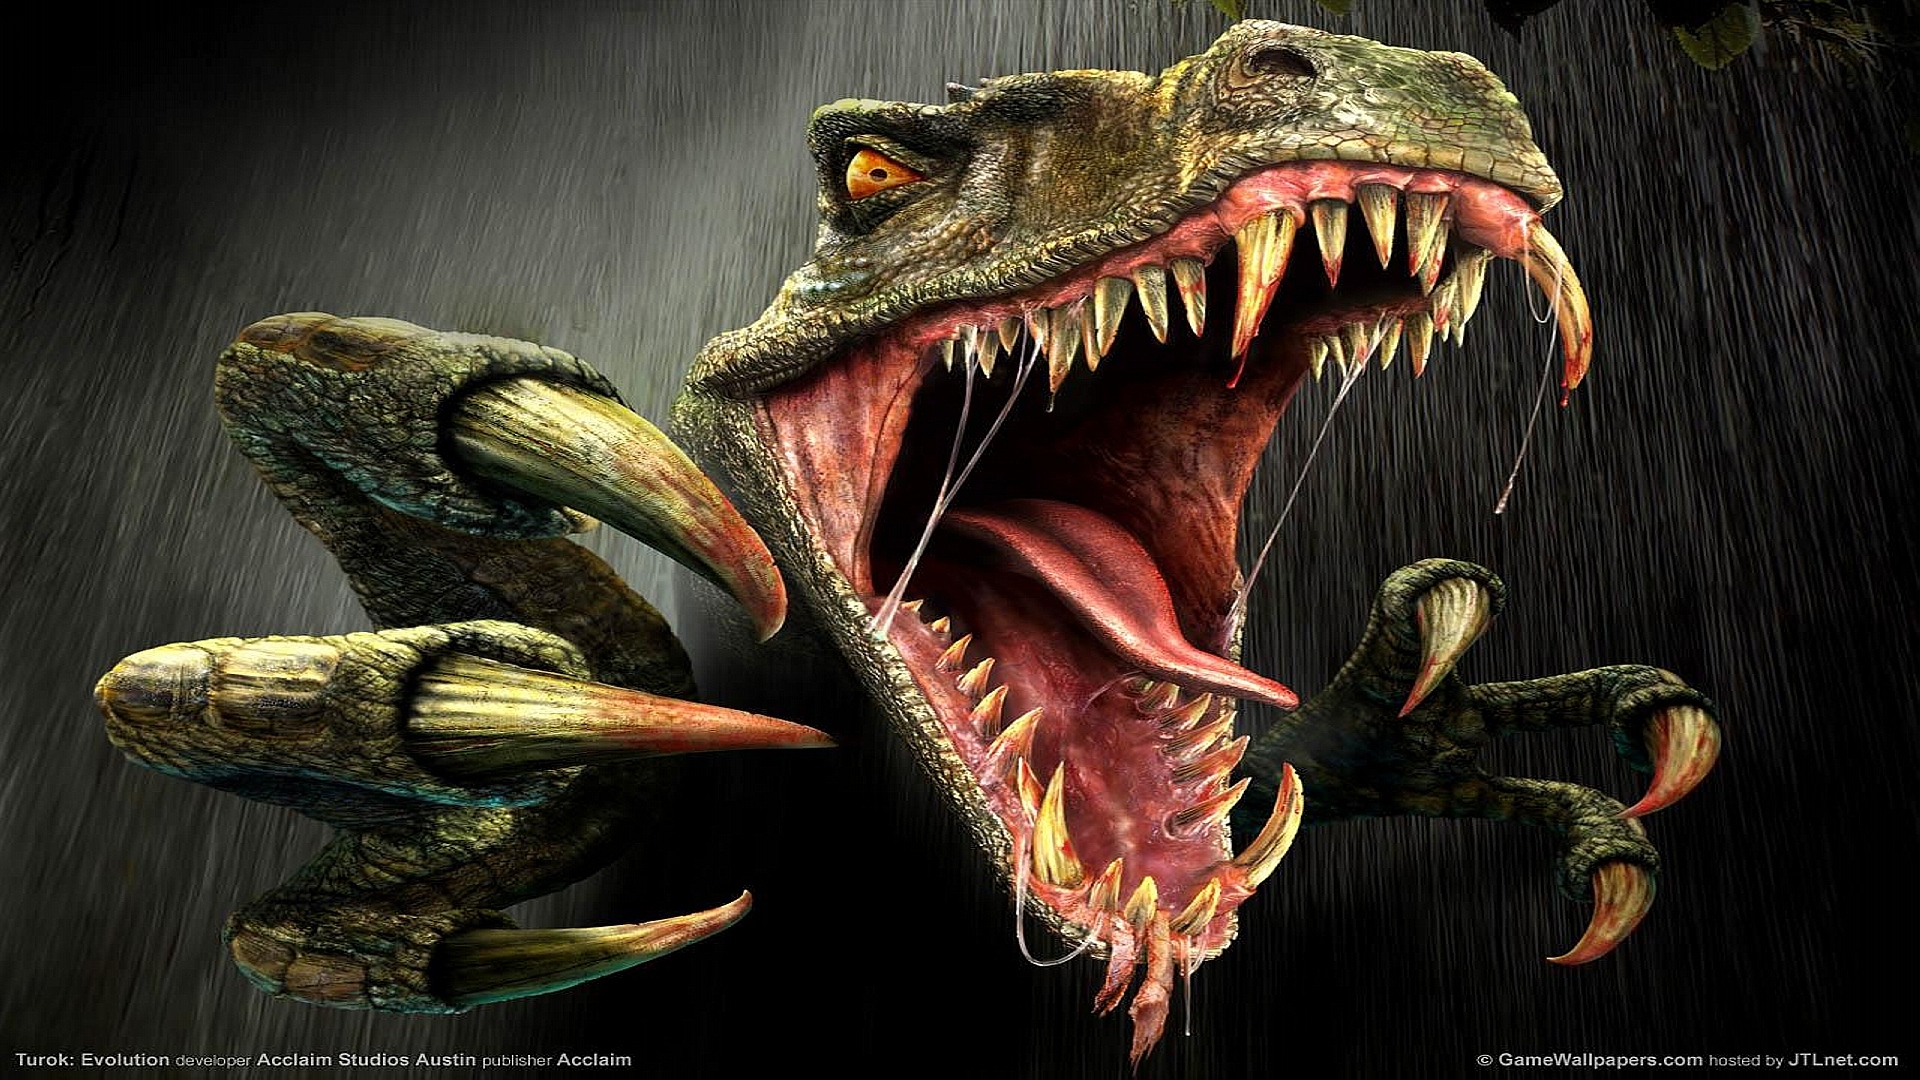 Download Dinosaur Images Miscellaneous Other Top Wallpaper 1920x1080 1920x1080